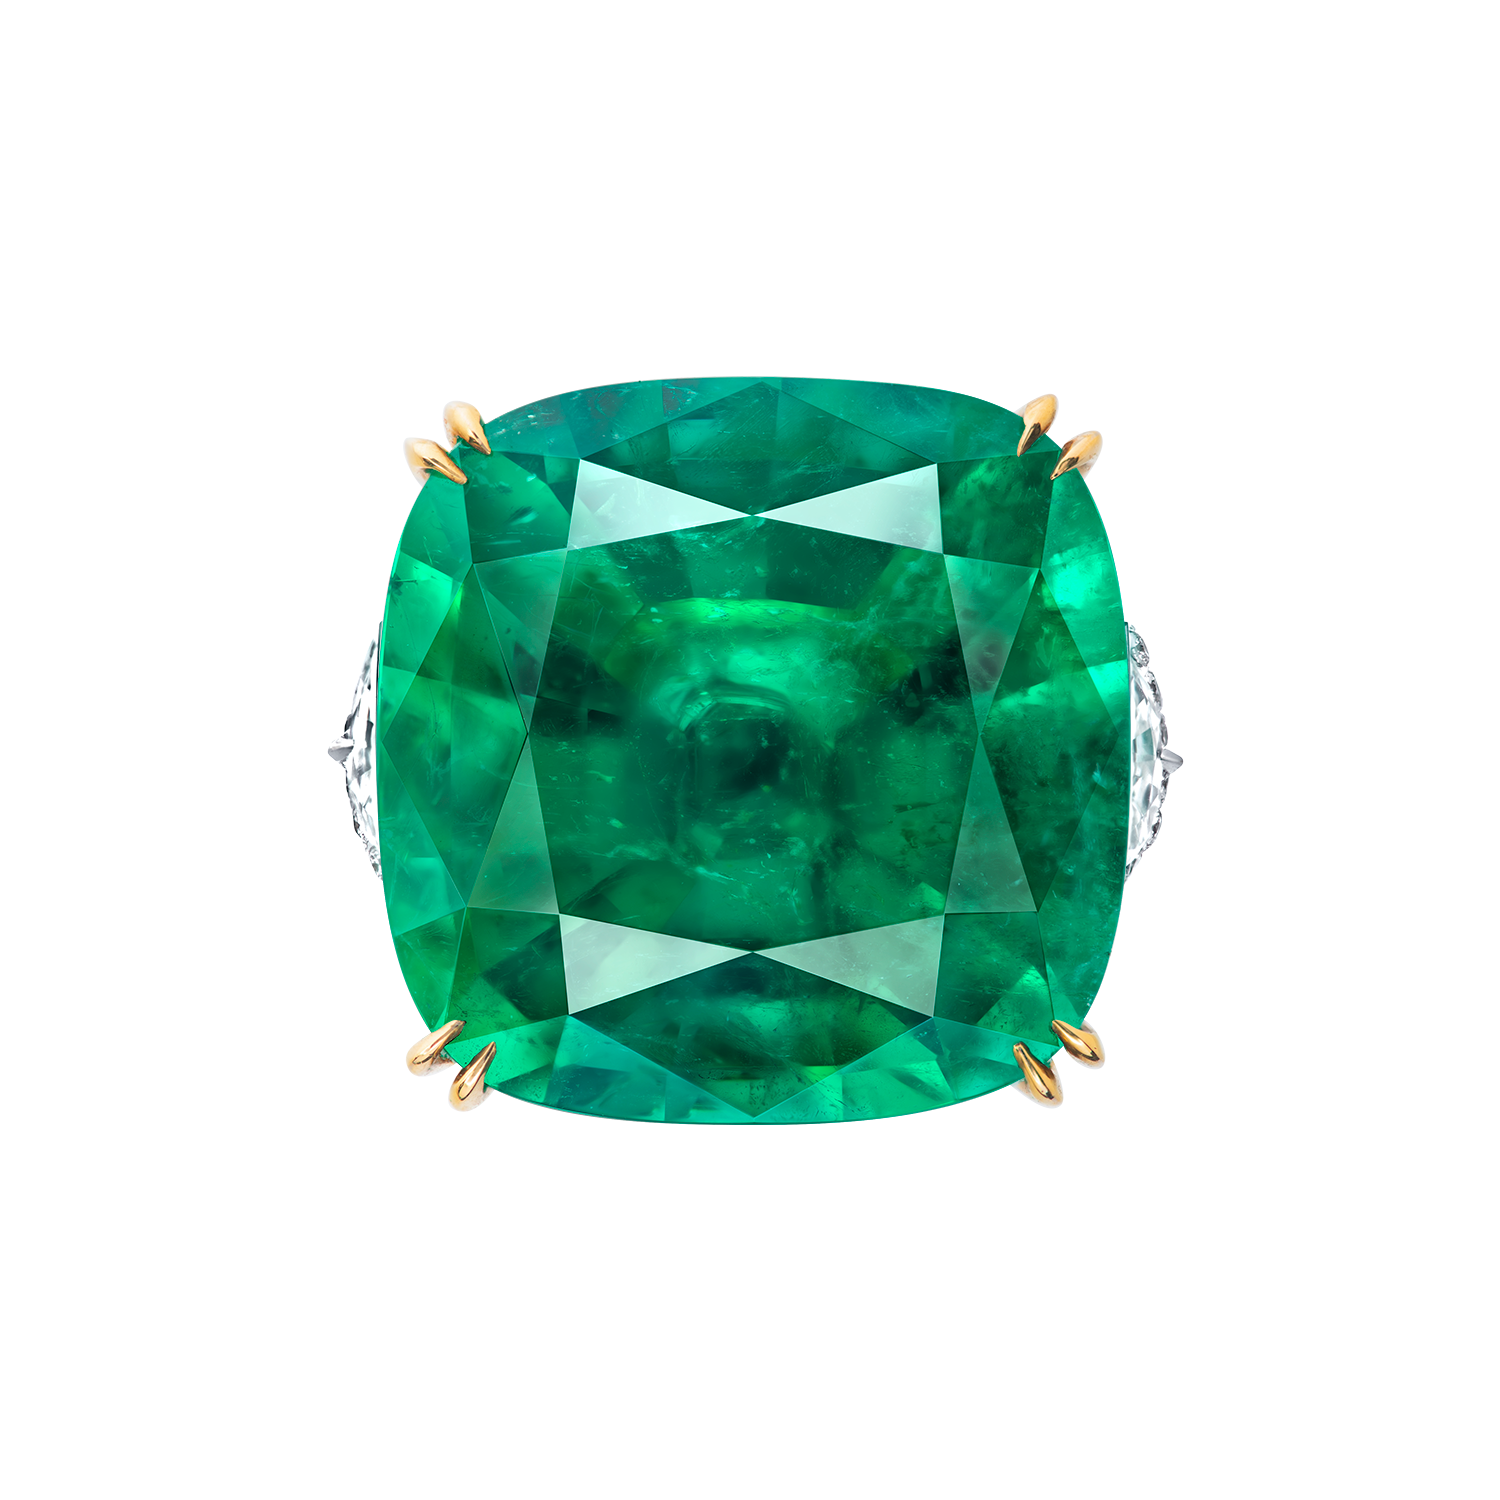 27.23克拉 哥倫比亞艷彩祖母綠鑽戒